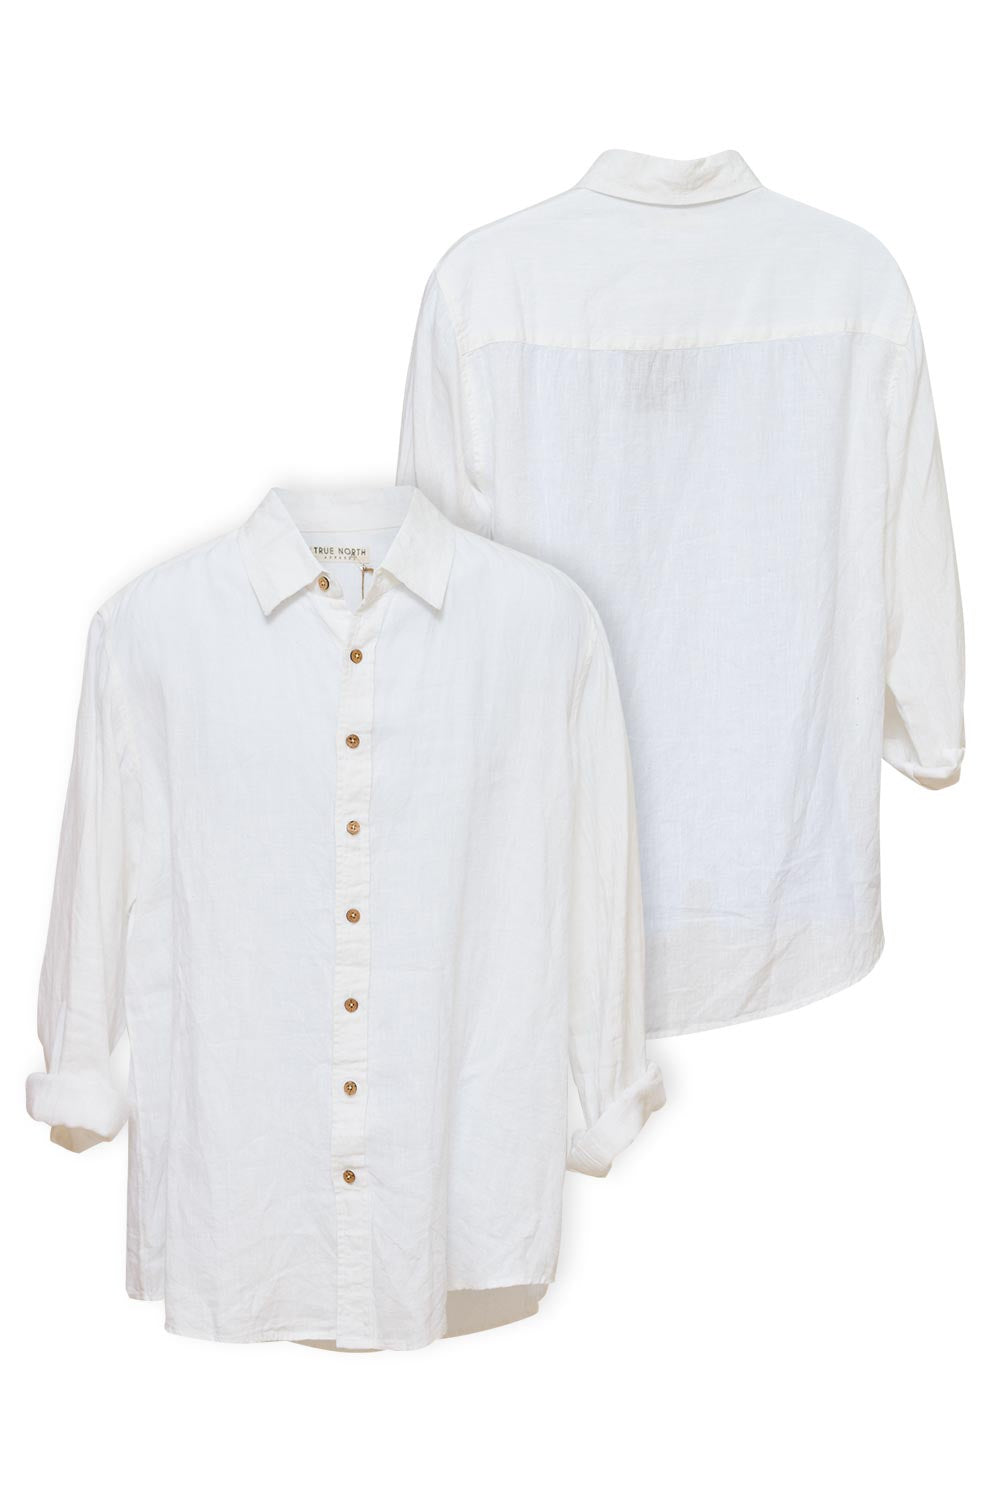 True North - TN160 Mens Oxford Linen Shirt (White)